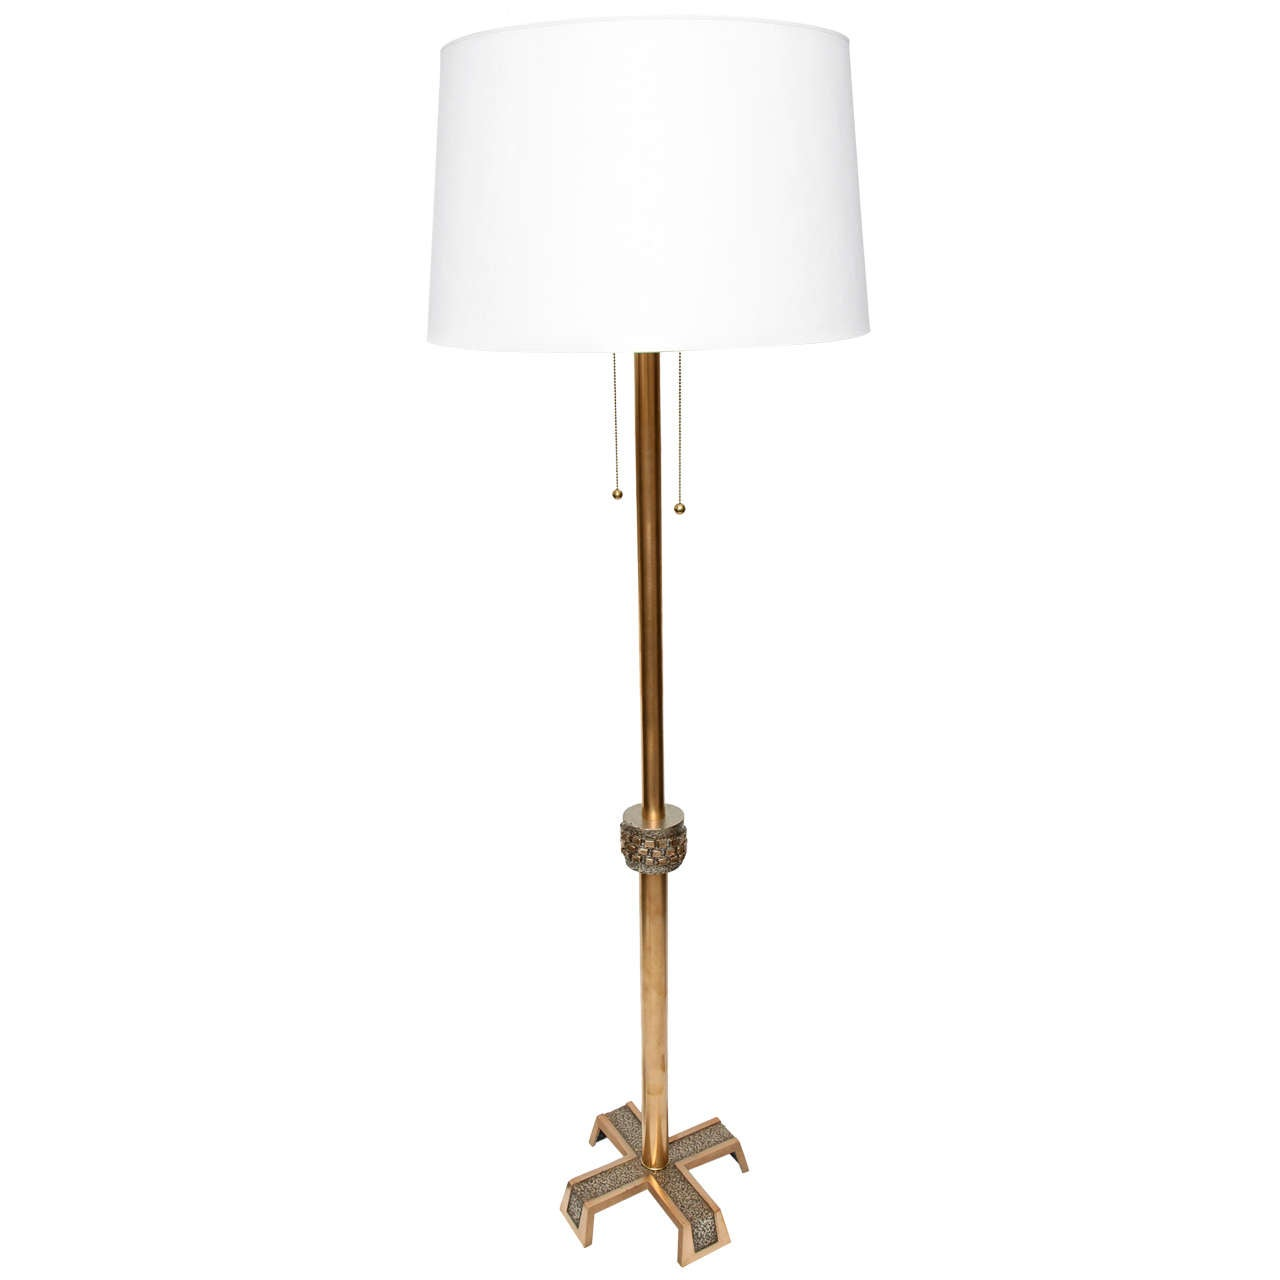 Floor Lamp 1960s : S modernist architectural floor lamp for sale at stdibs